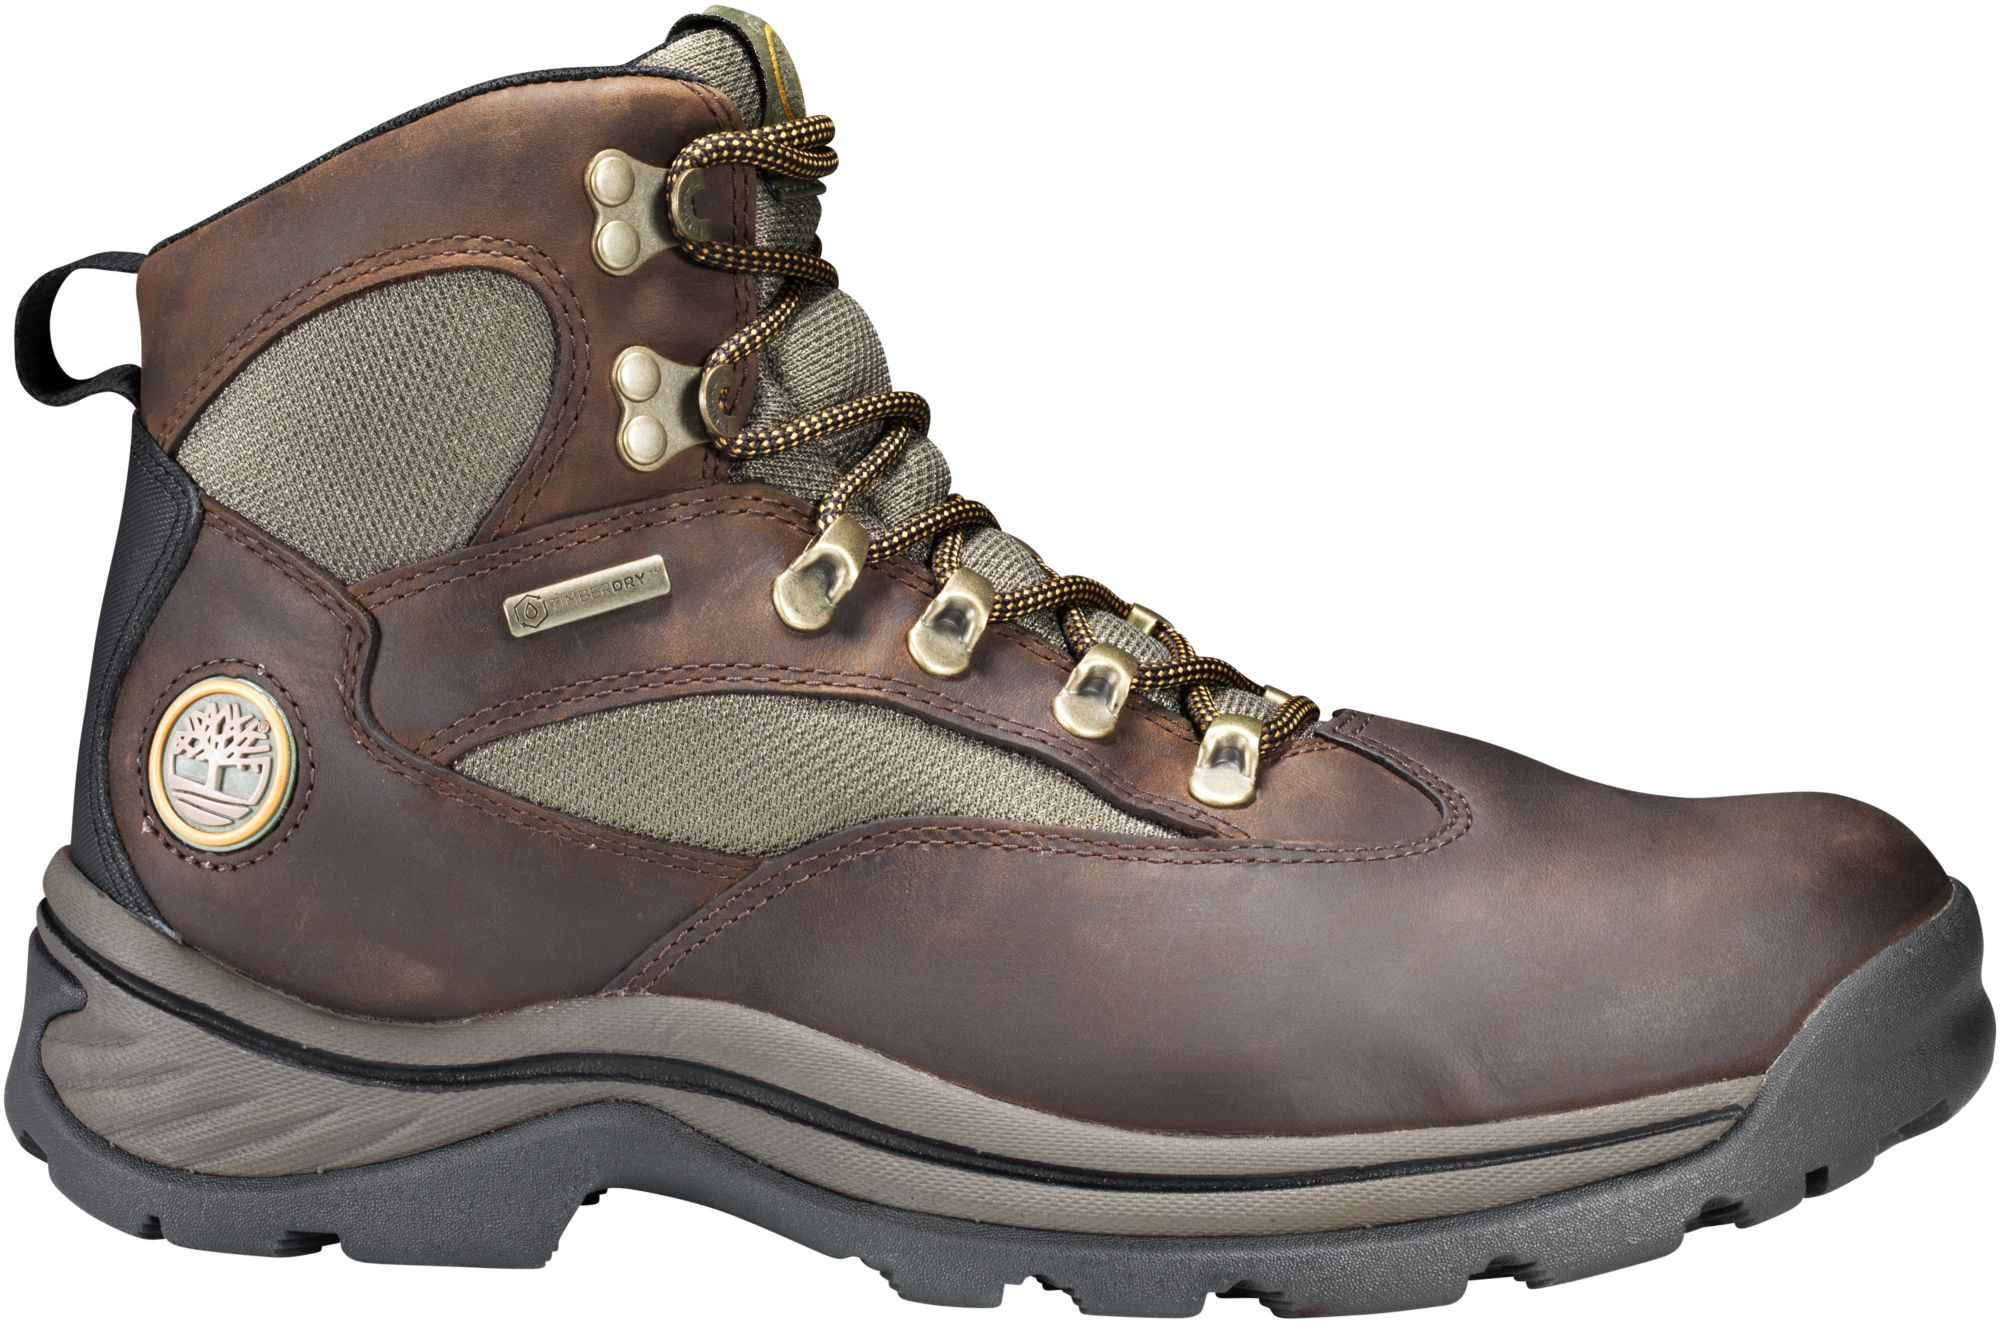 Women's Thunder Waterproof Mid-Cut Hiking Boots | Mark's